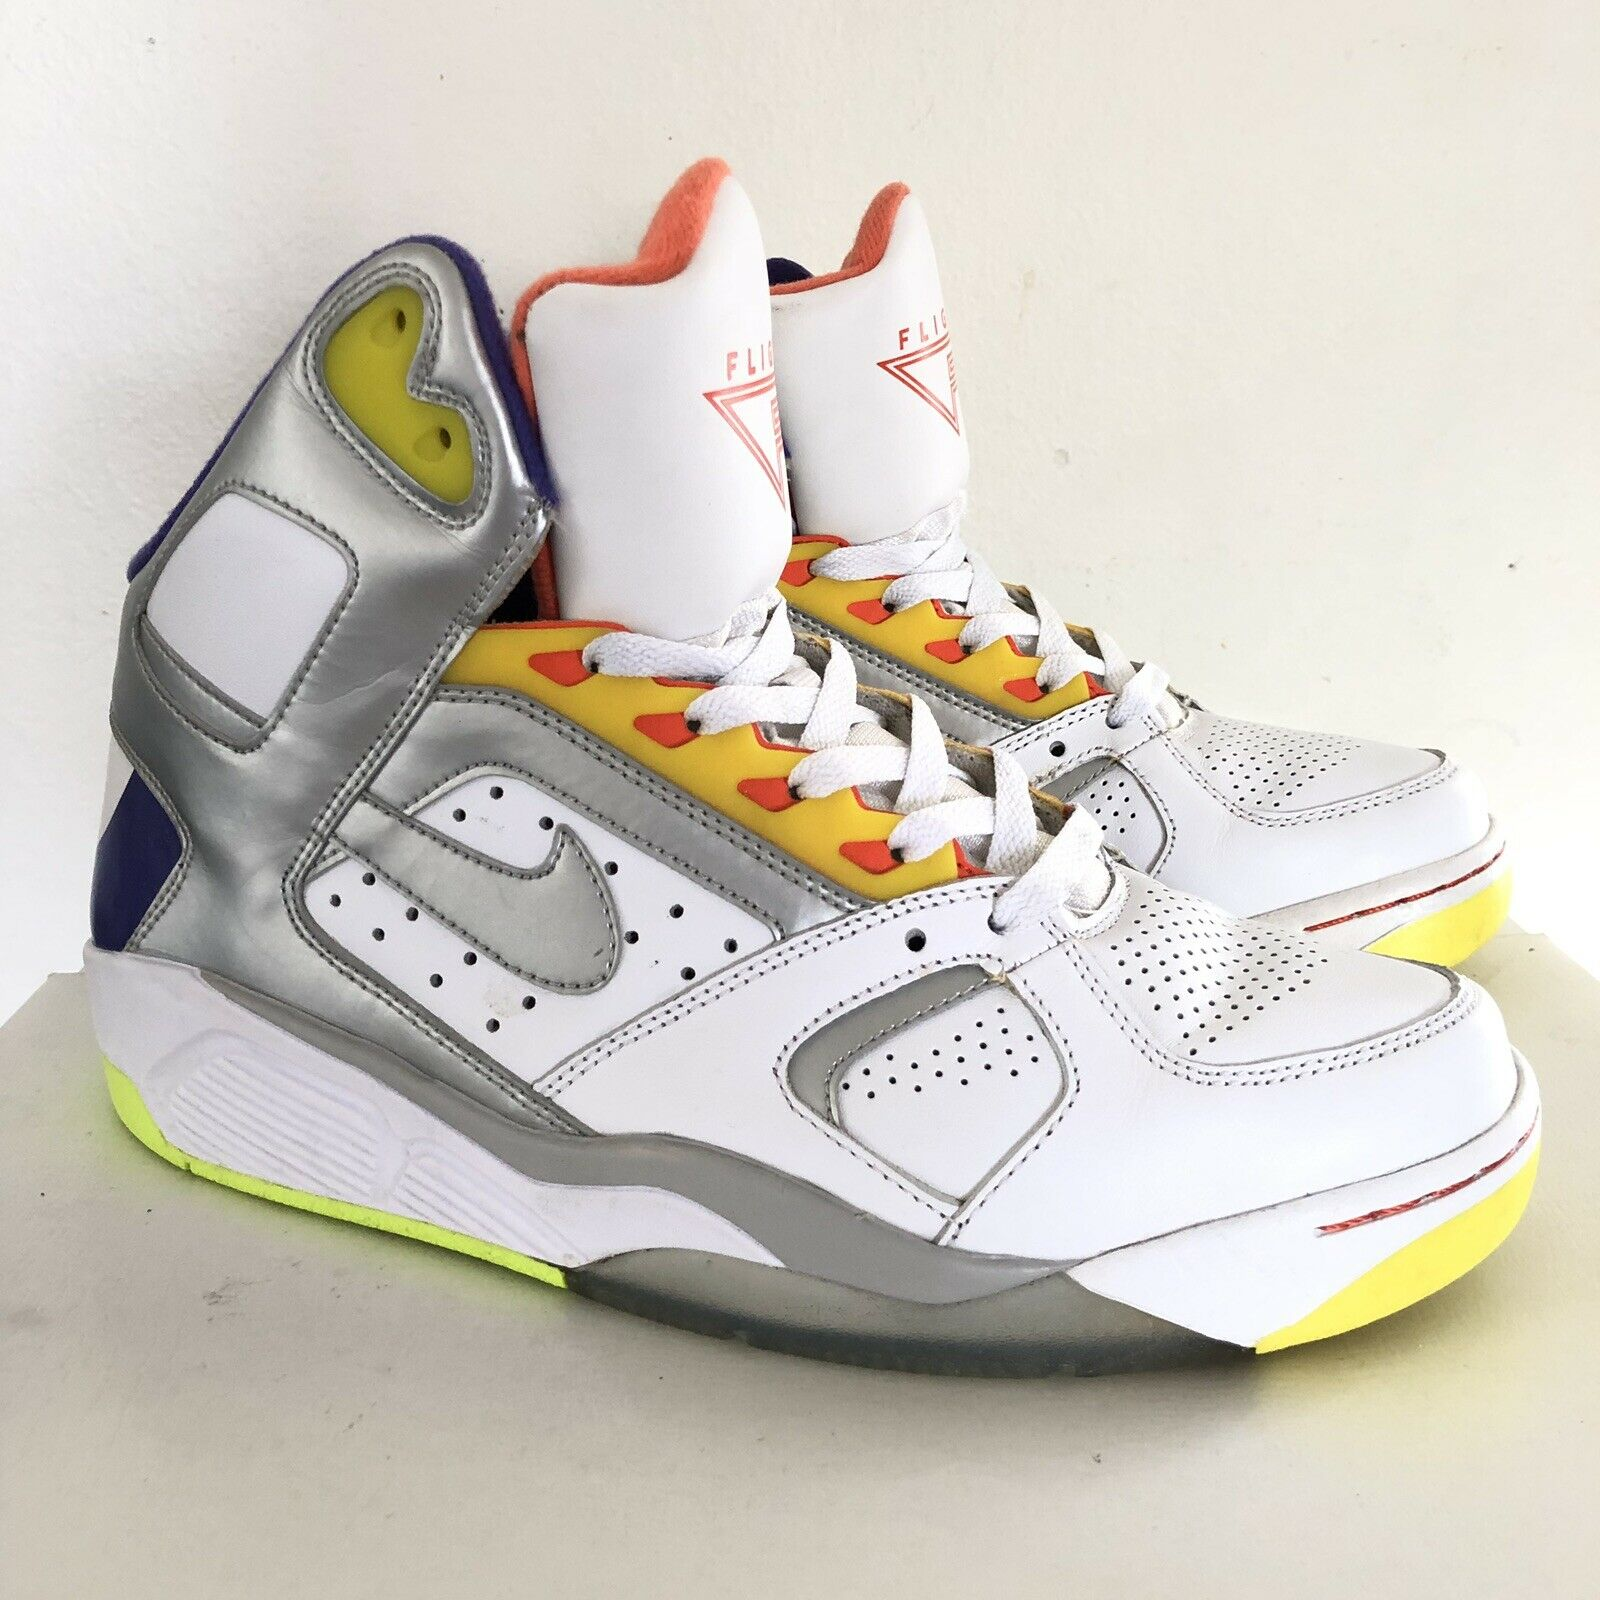 low priced e853f 69563 NIKE AIR FORCE FLIGHT F high top basketball shoes 329984-100 Size 9.5 US  MENS